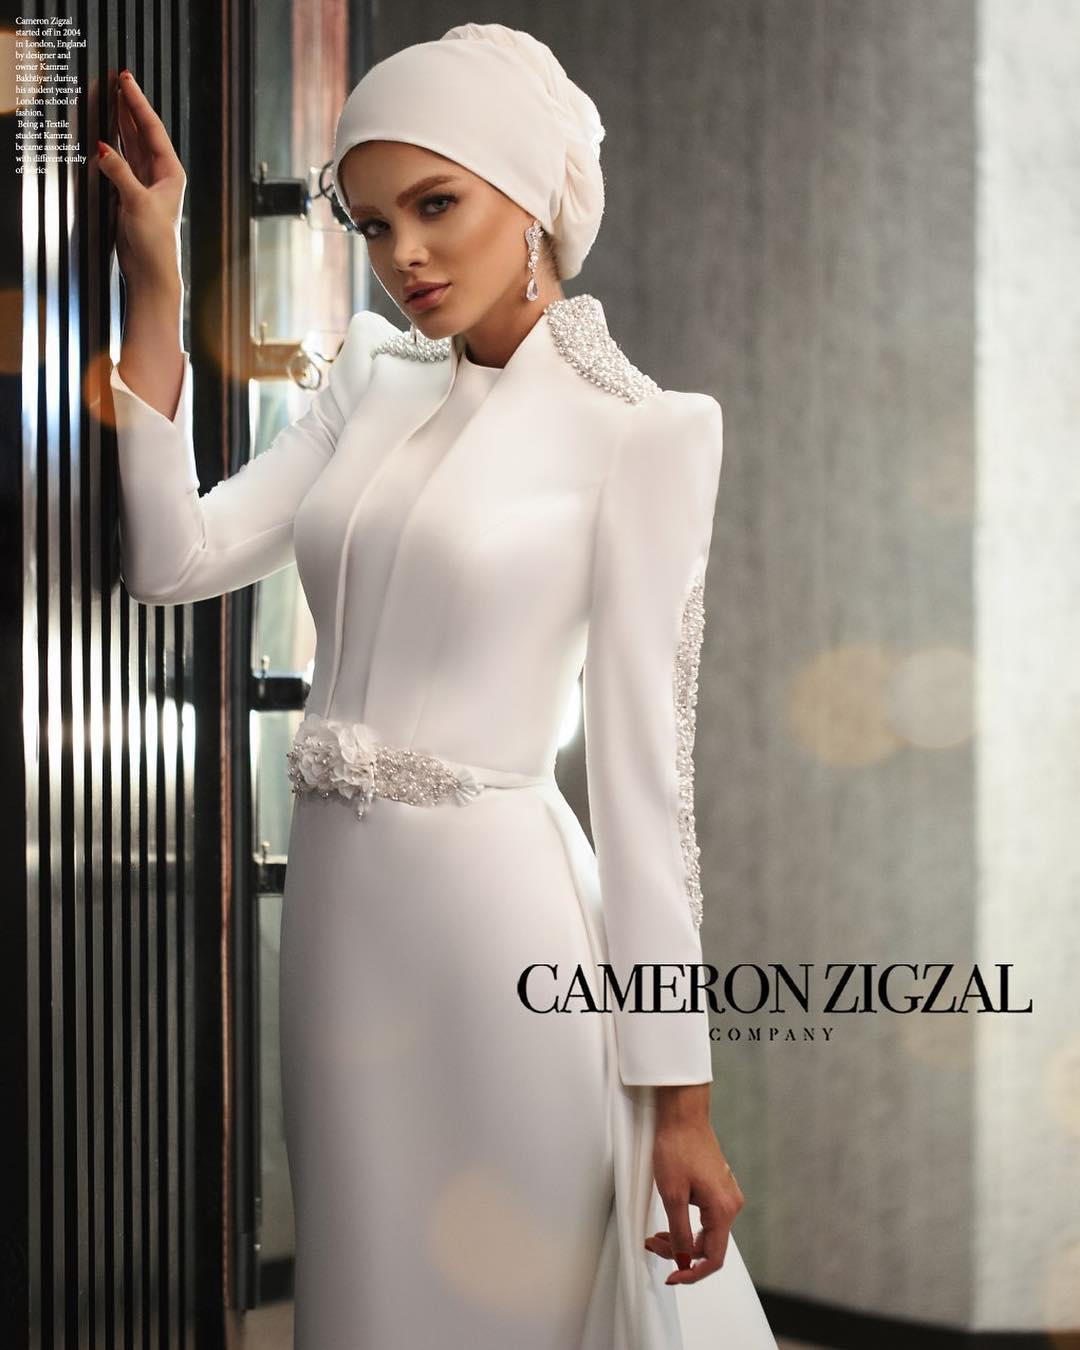 Cameronzigzal's wedding Gown